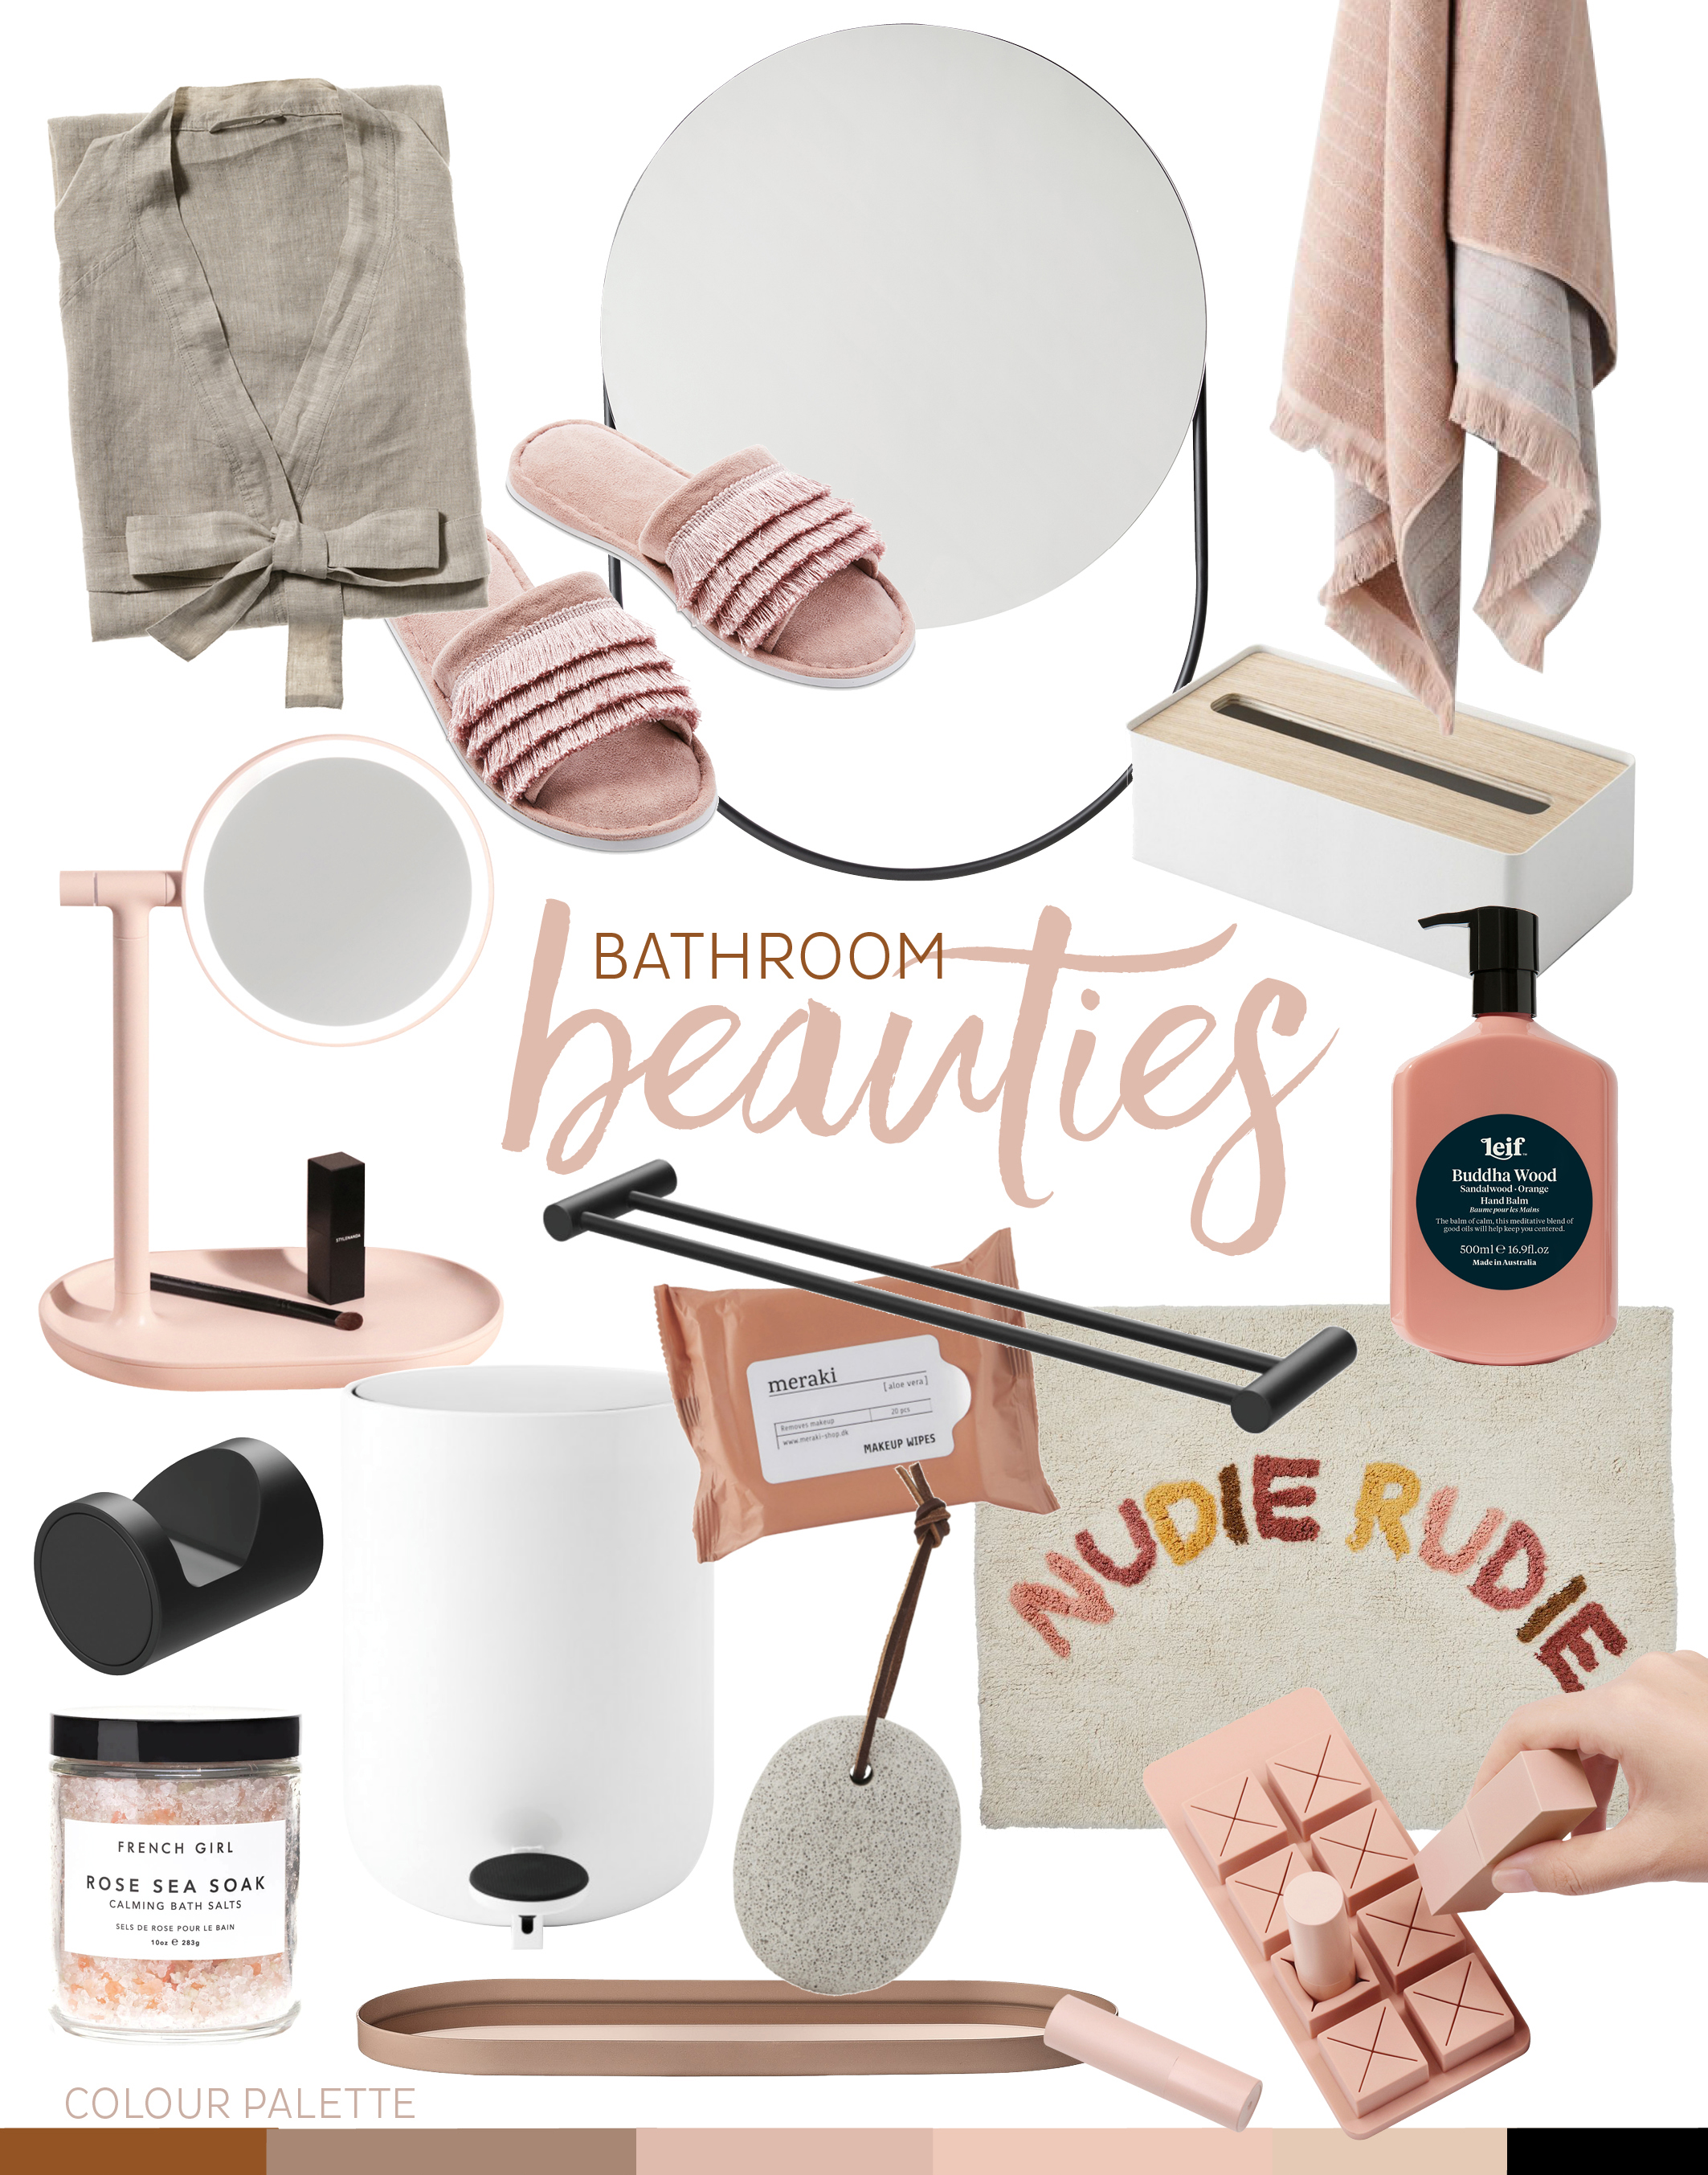 adore_home_magazine_blog_BATHROOM_BEAUTIES_accessories_towel_rail_mirror_tray_storage_bin.jpg